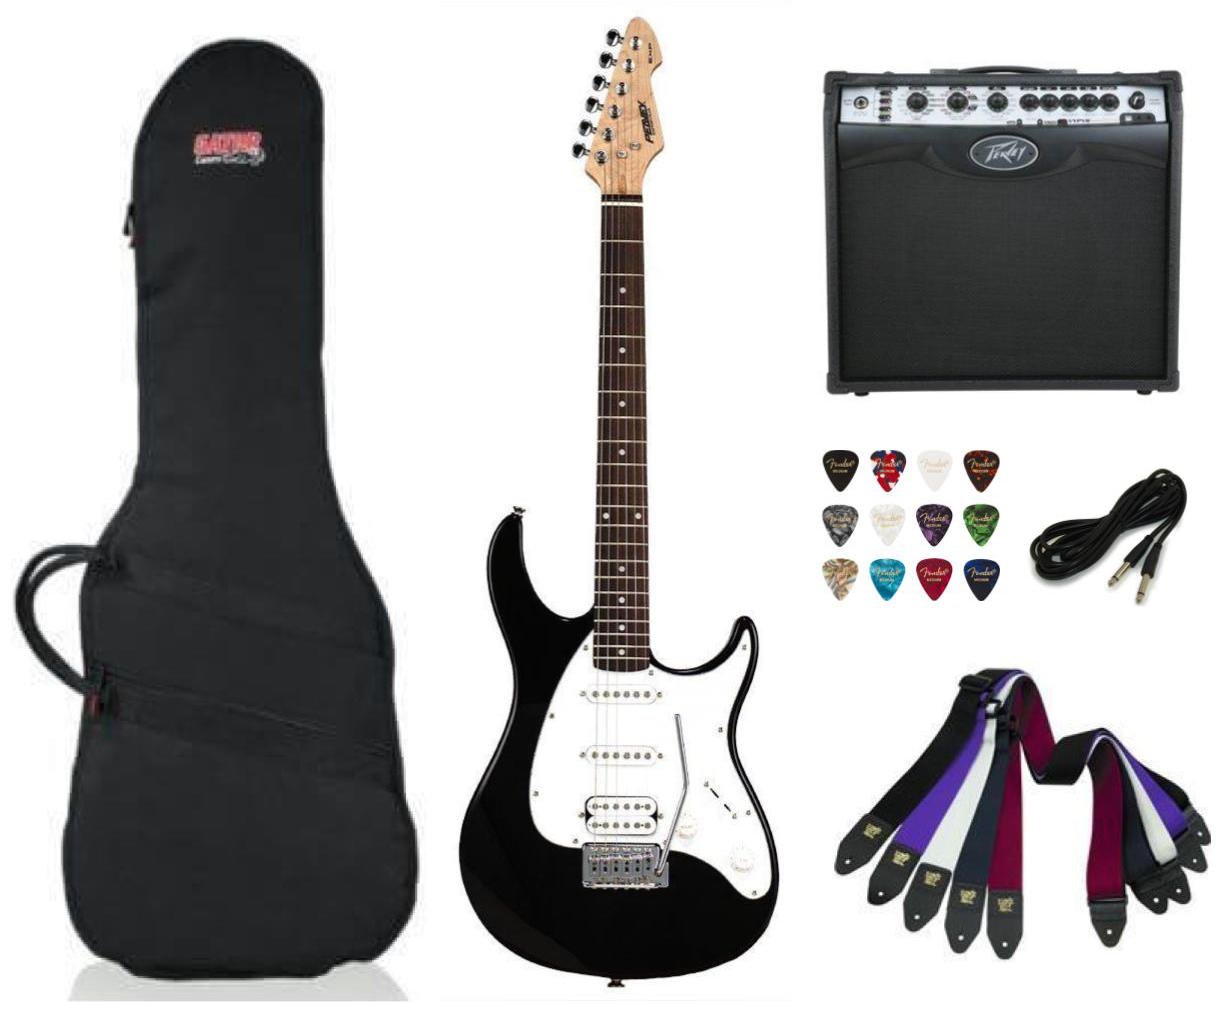 Peavey Raptor Plus Electric Guitar SSH - Black Package Deal with Amplifier, Gig Bag, Cable, Straps and Picks